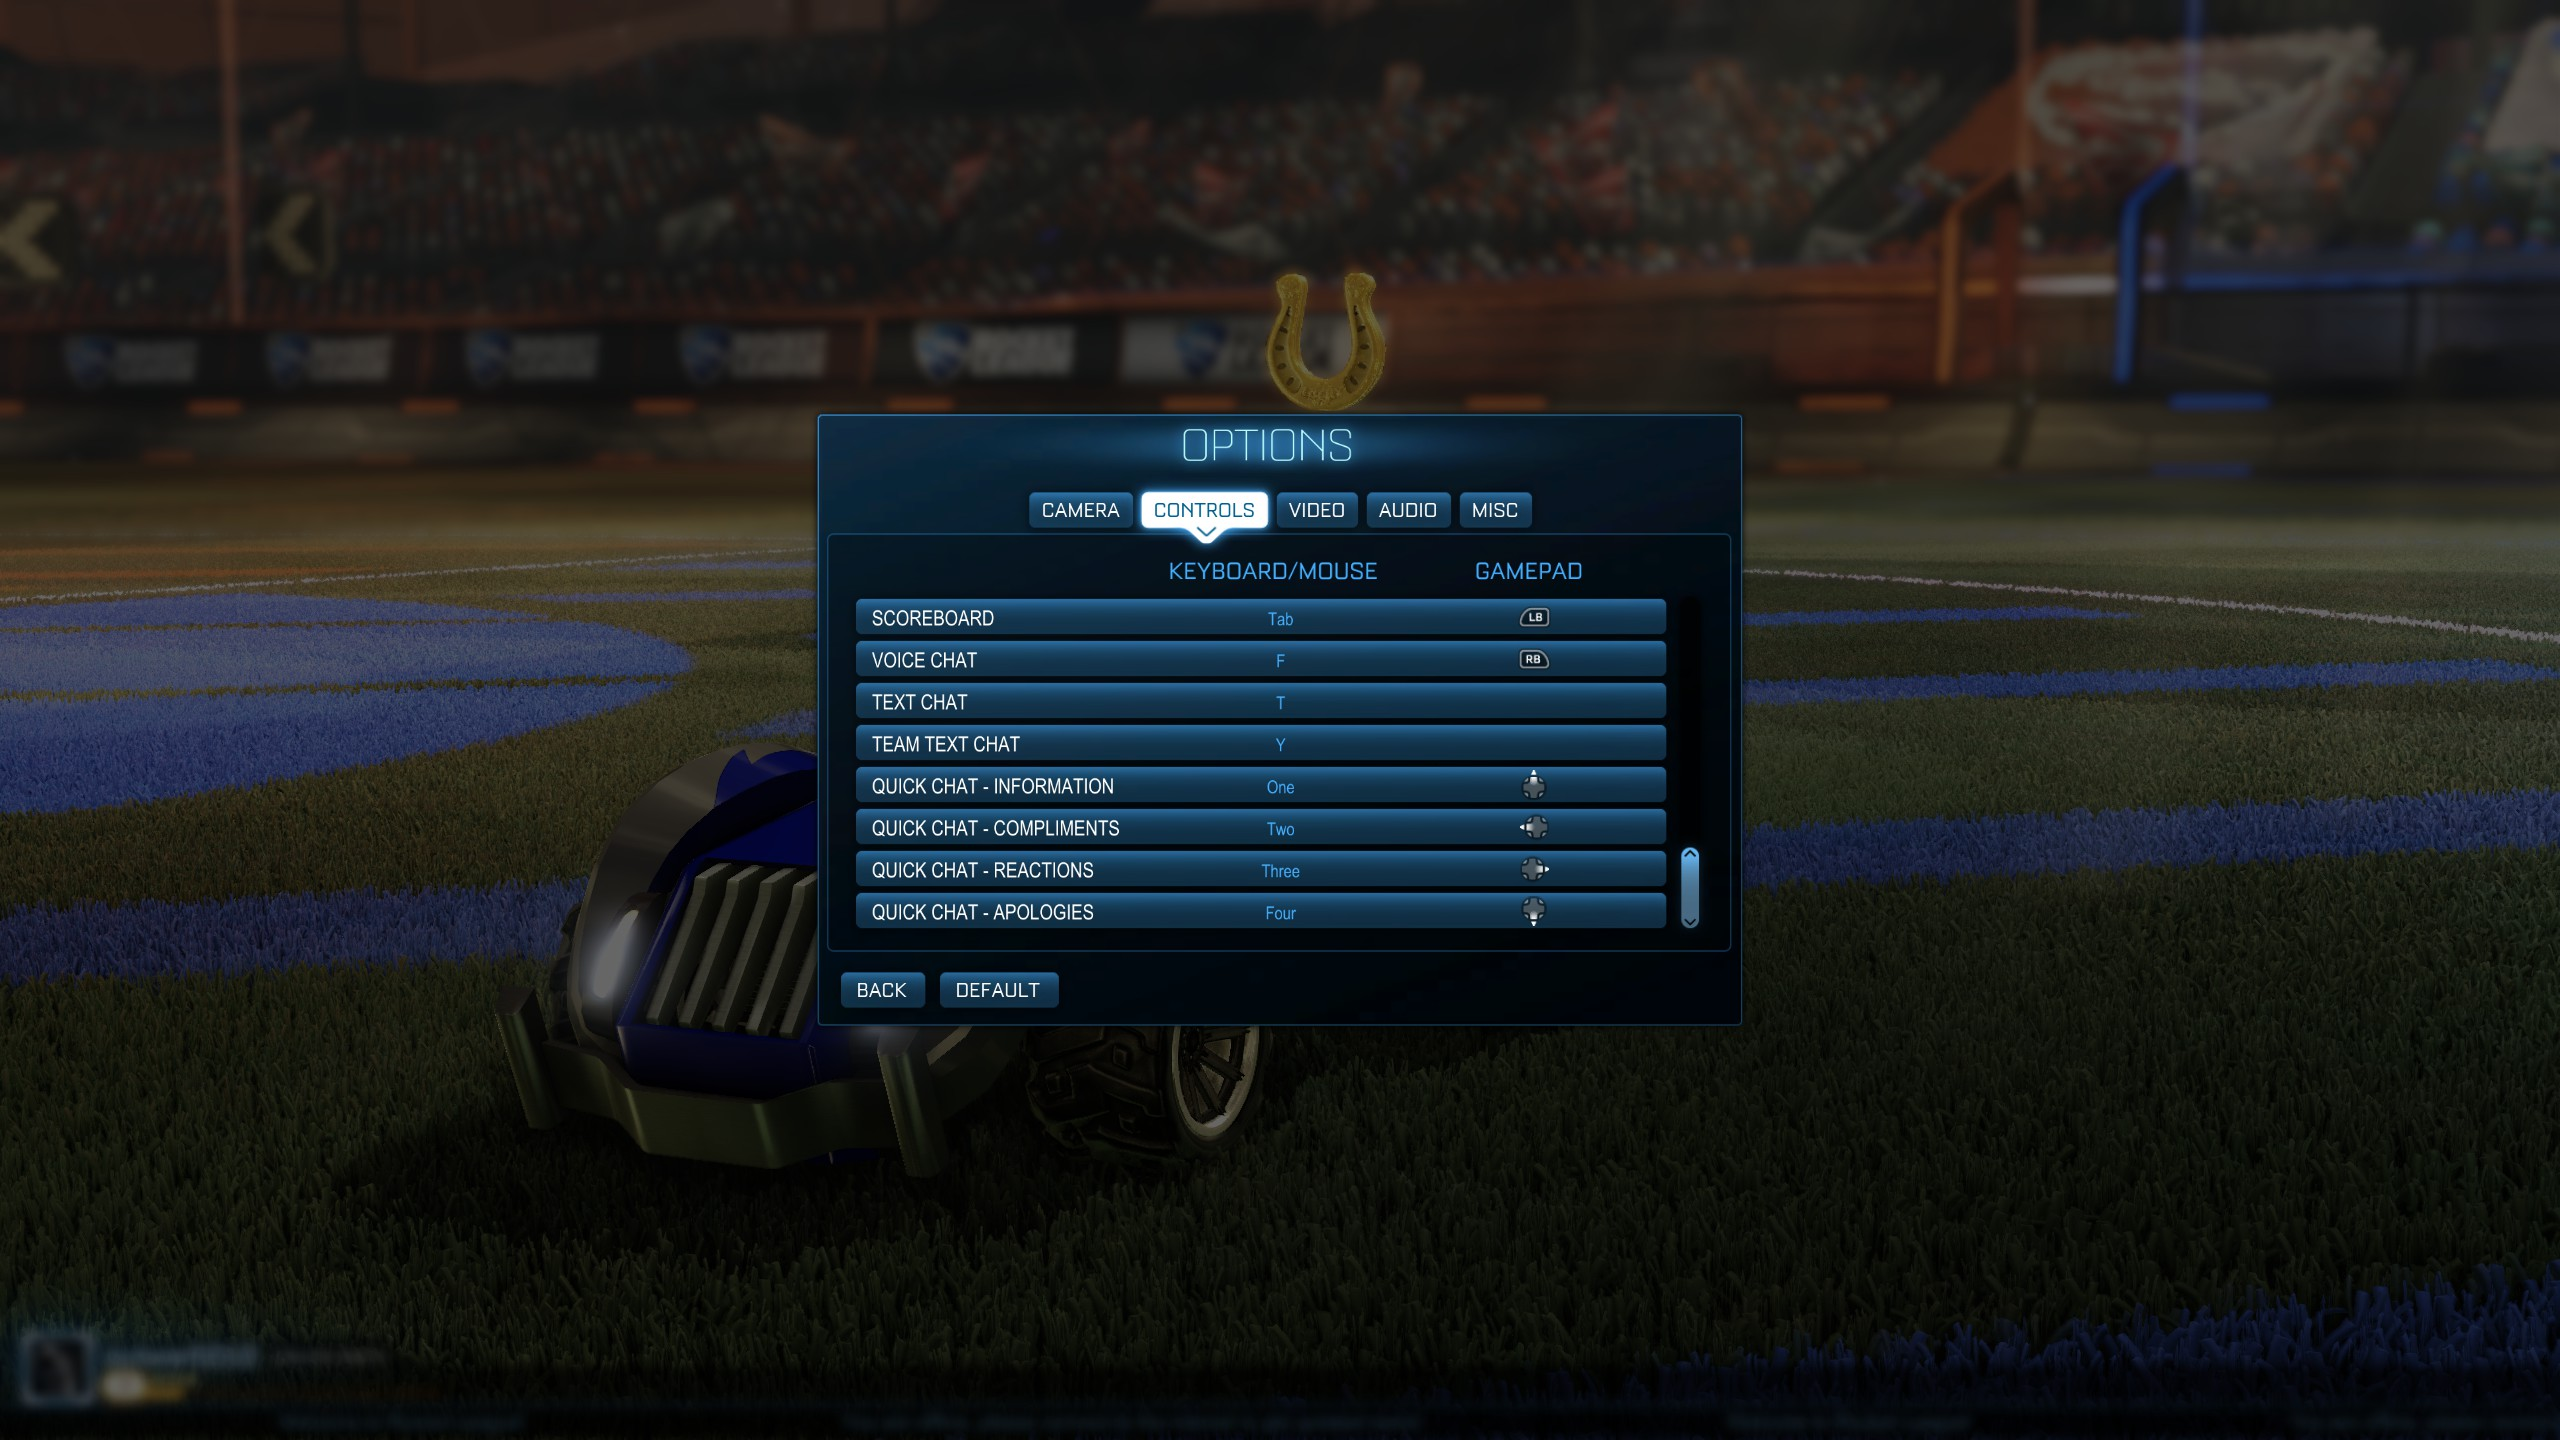 Rocket league camera settings ~ idee di design nella vostra casa